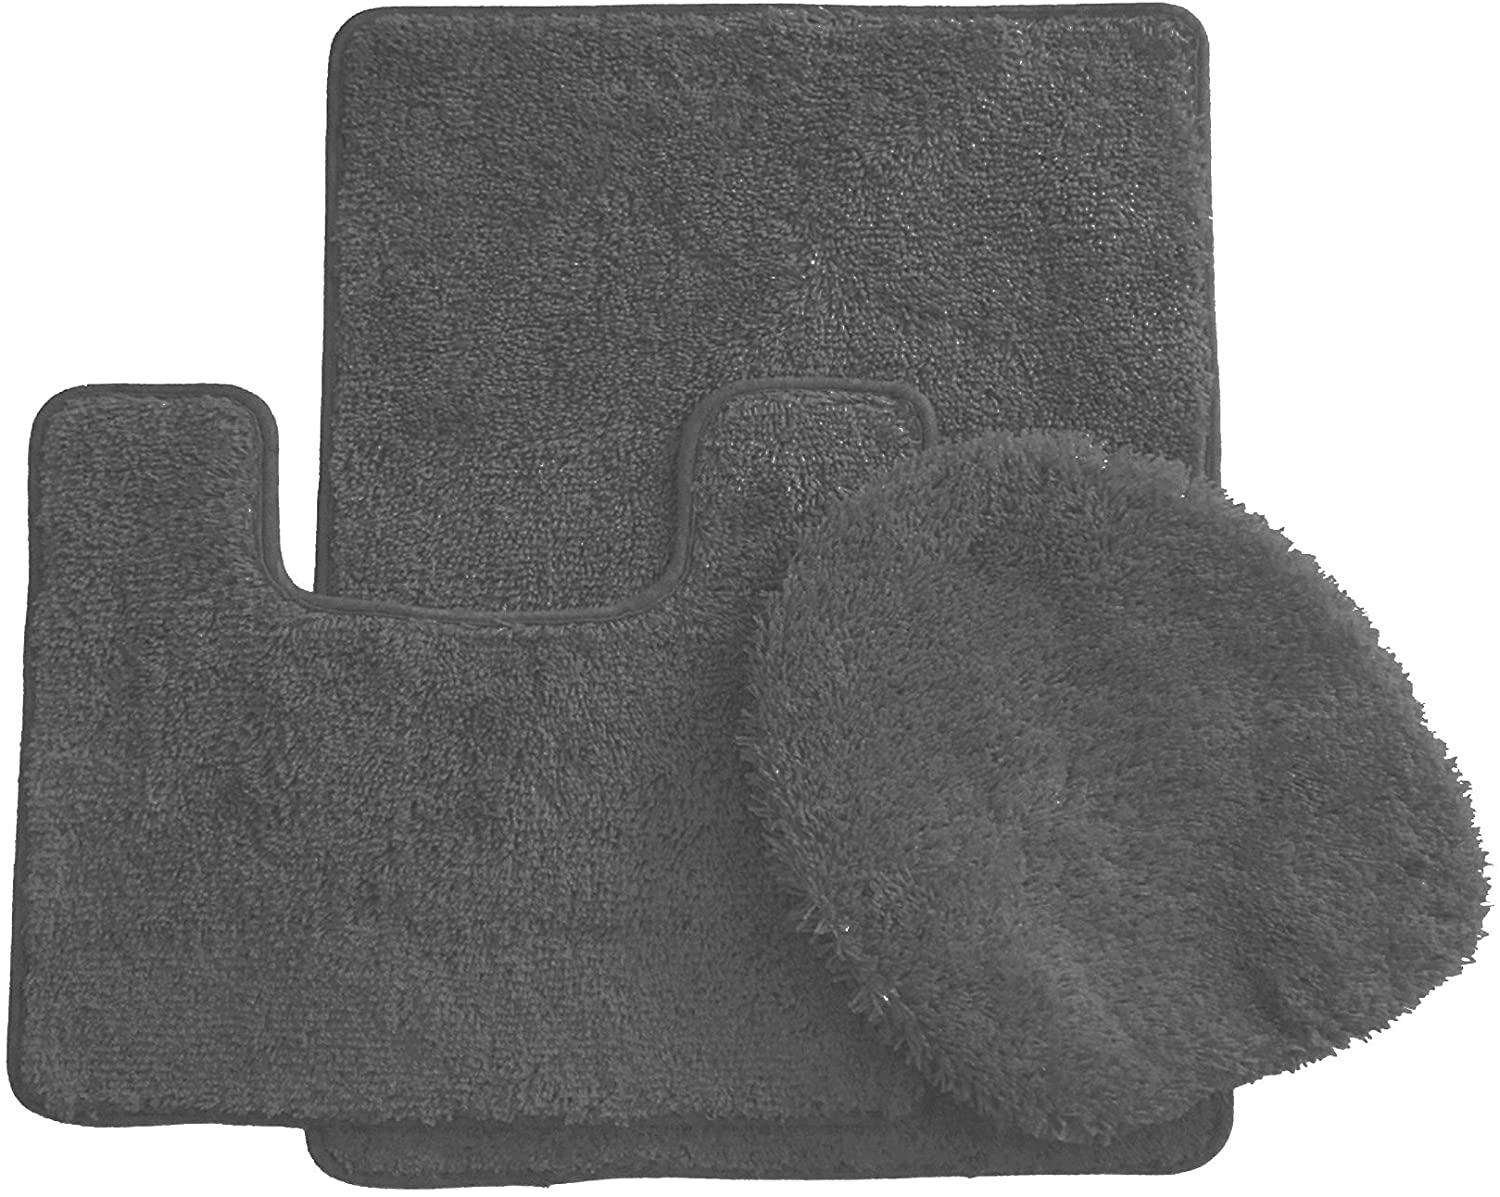 BH Home & Linen 3 Piece Luxurious Ultra Spa Solid Colors Bath Rug Set Made with 100% Polypropylene. (Gray)